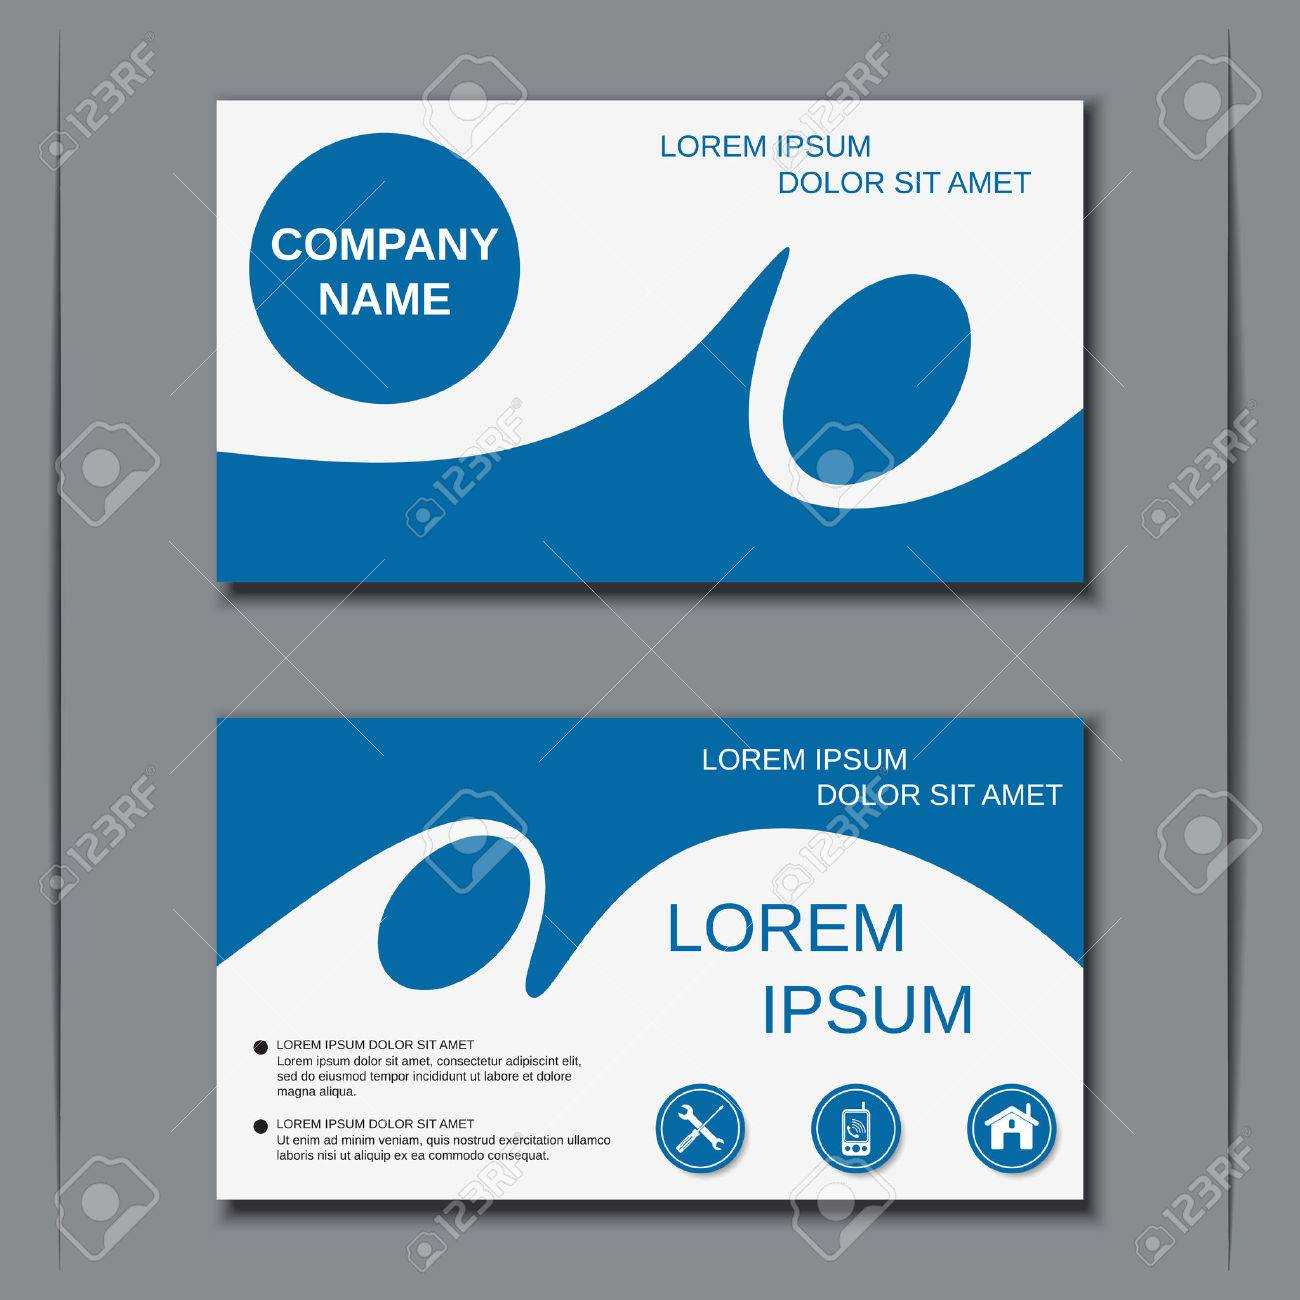 Modern business visiting card design template royalty free cliparts modern business visiting card design template stock vector 46902797 colourmoves